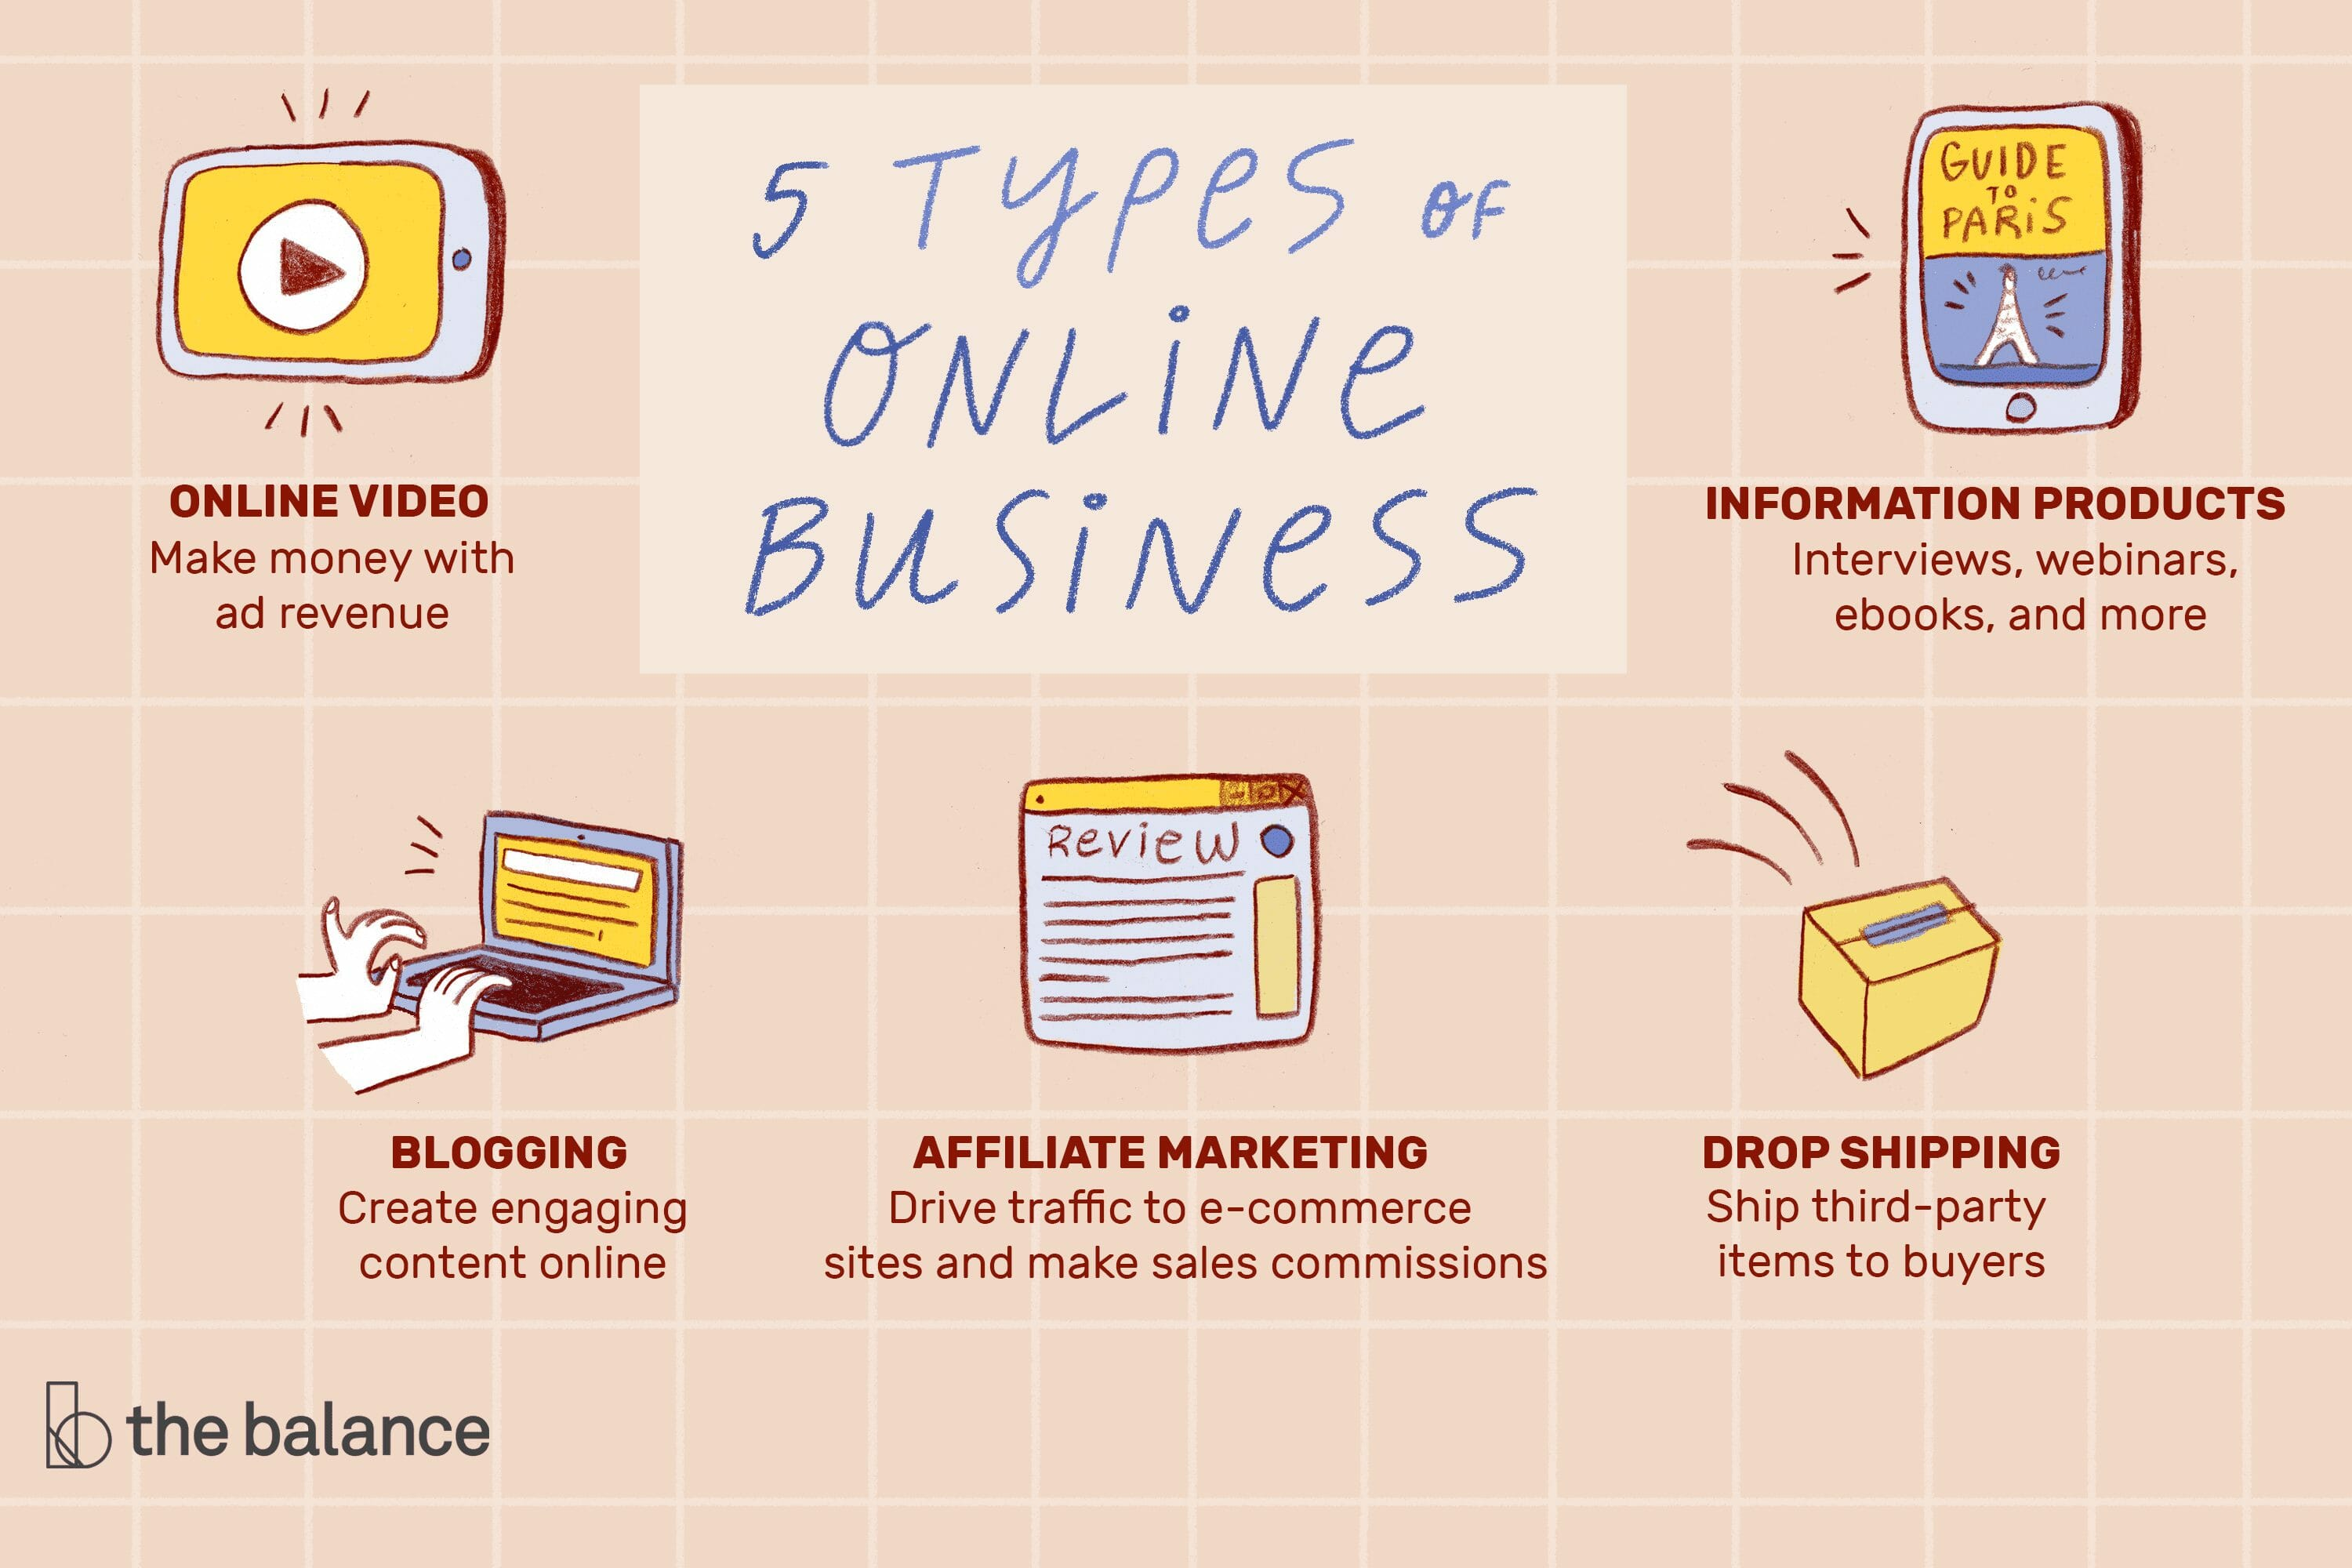 5 Types of Online Business: online video, information products, blogging, affiliate marketing, and drop shipping